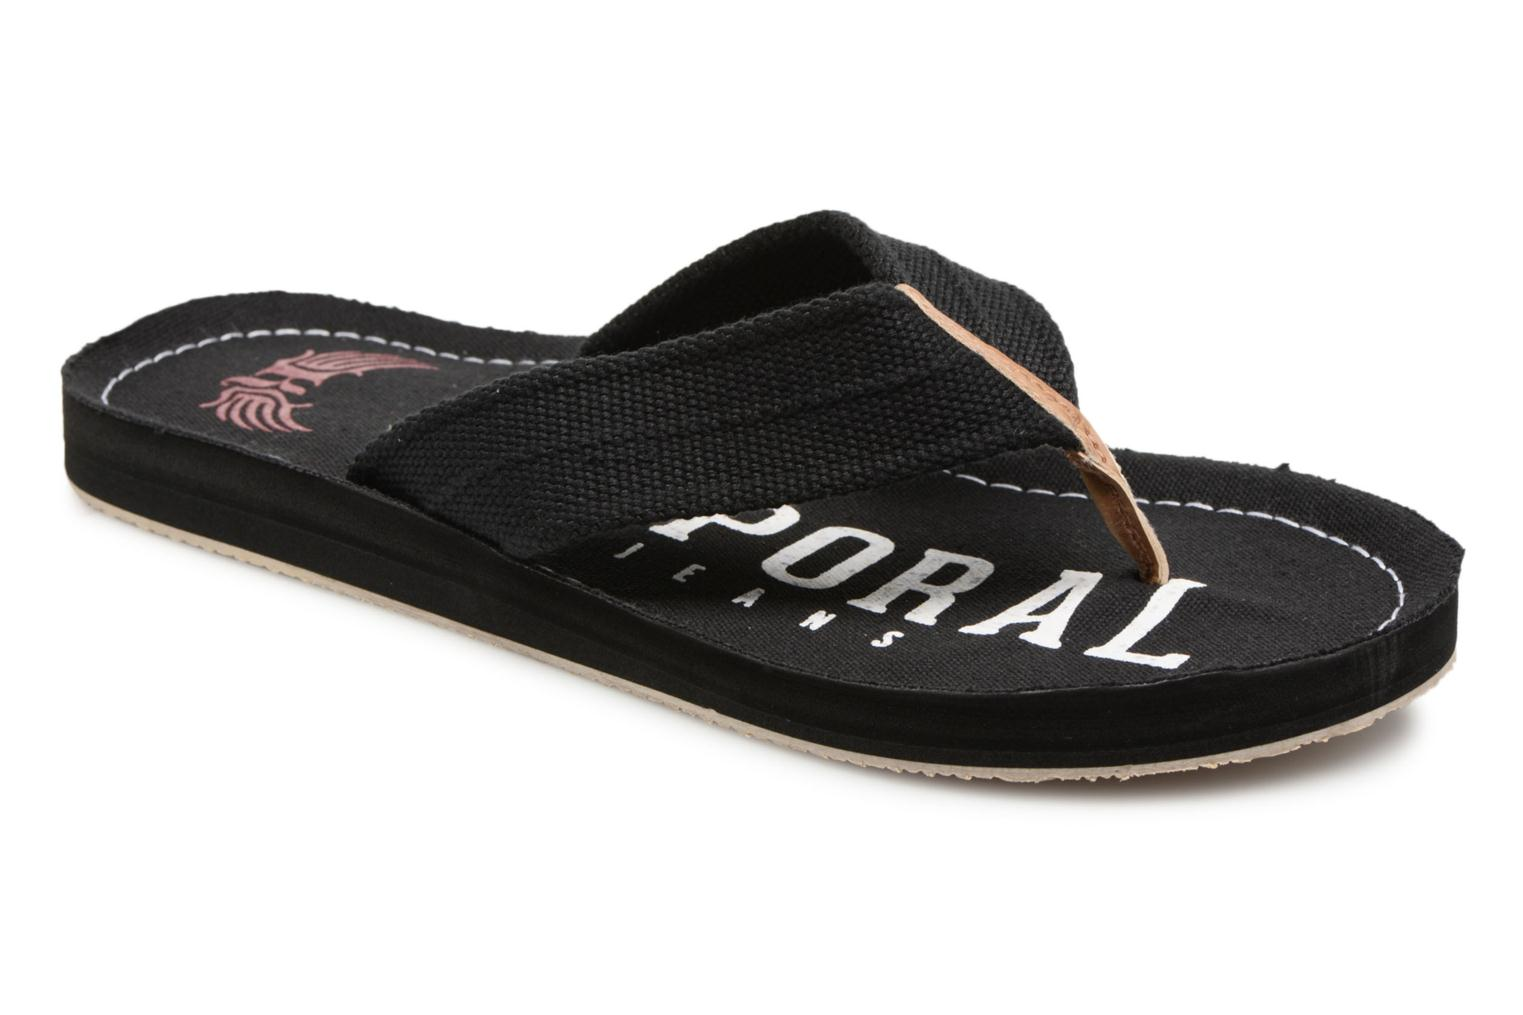 With Paypal Low Price Mens Taino Flip Flops Kaporal Free Shipping Fashionable JHcee